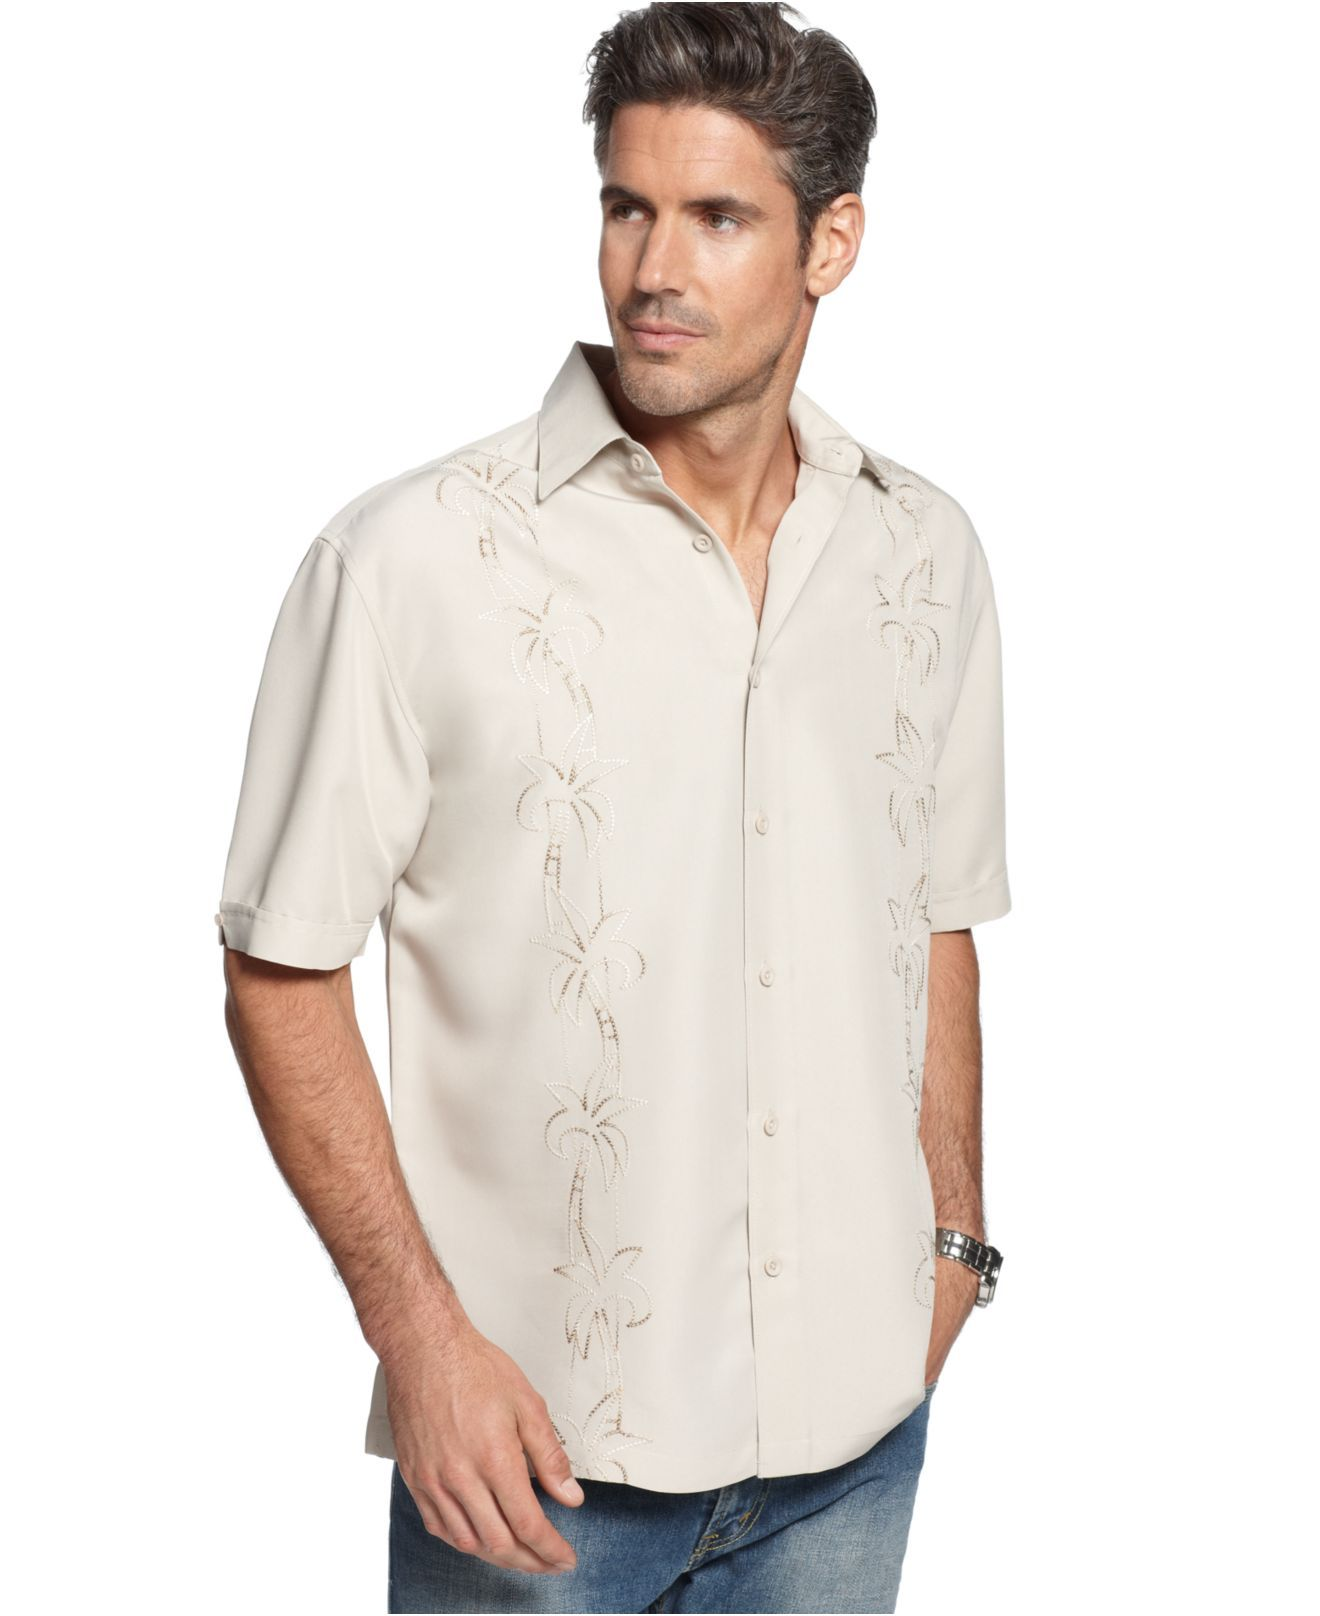 Cubavera shirt embroidered palm tree shirt mens casual for Mens button down shirts